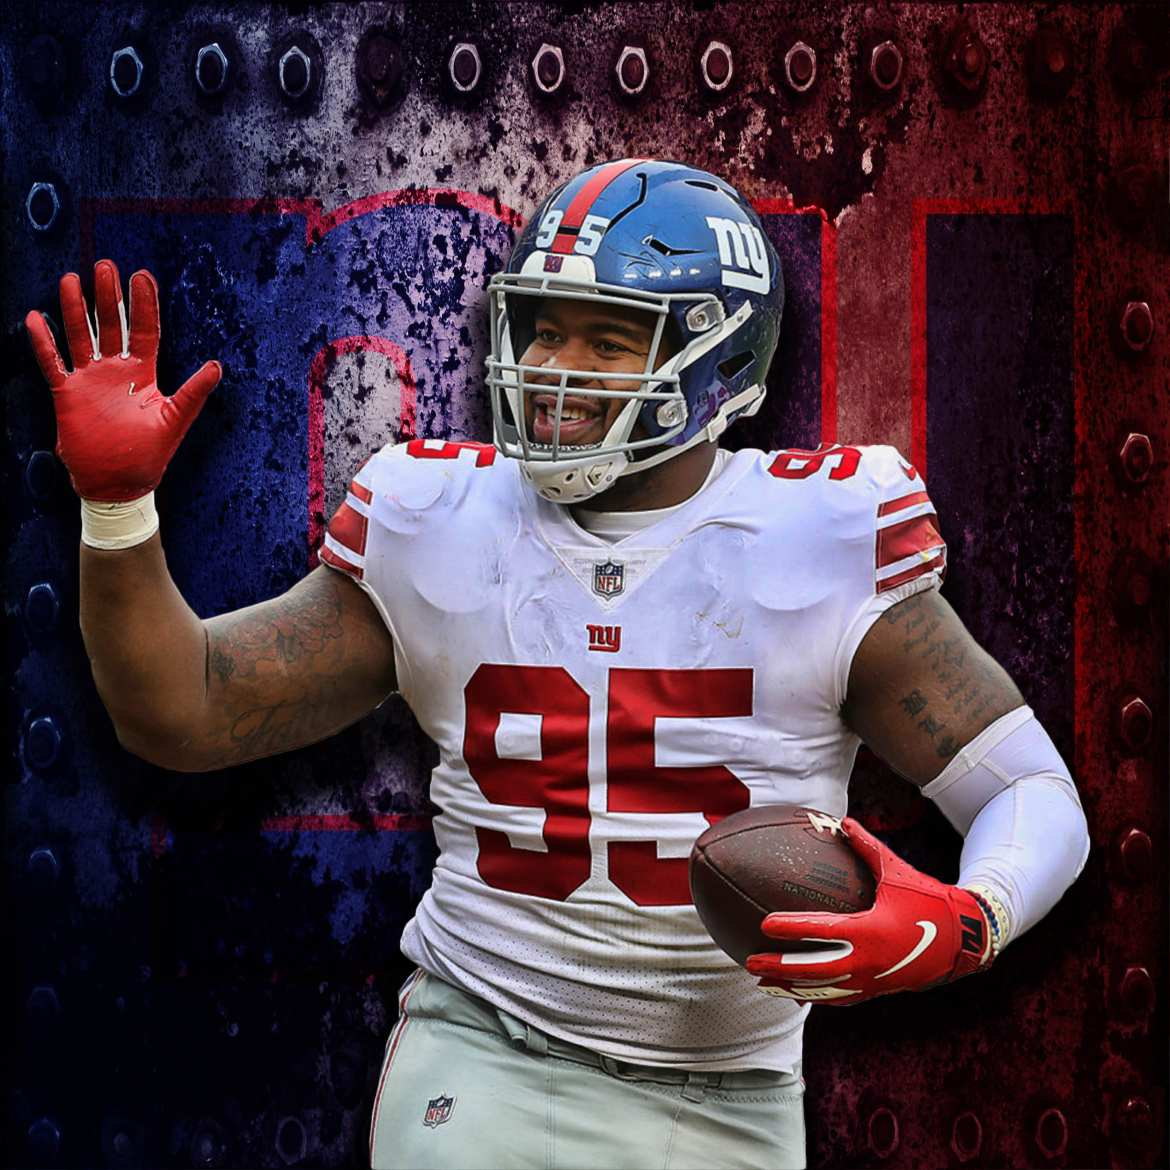 2019 Nfl Rookie Of Year Odds Saquon Barkley Favorite Over: New York Giants Most Underrated Offseason Acquisition